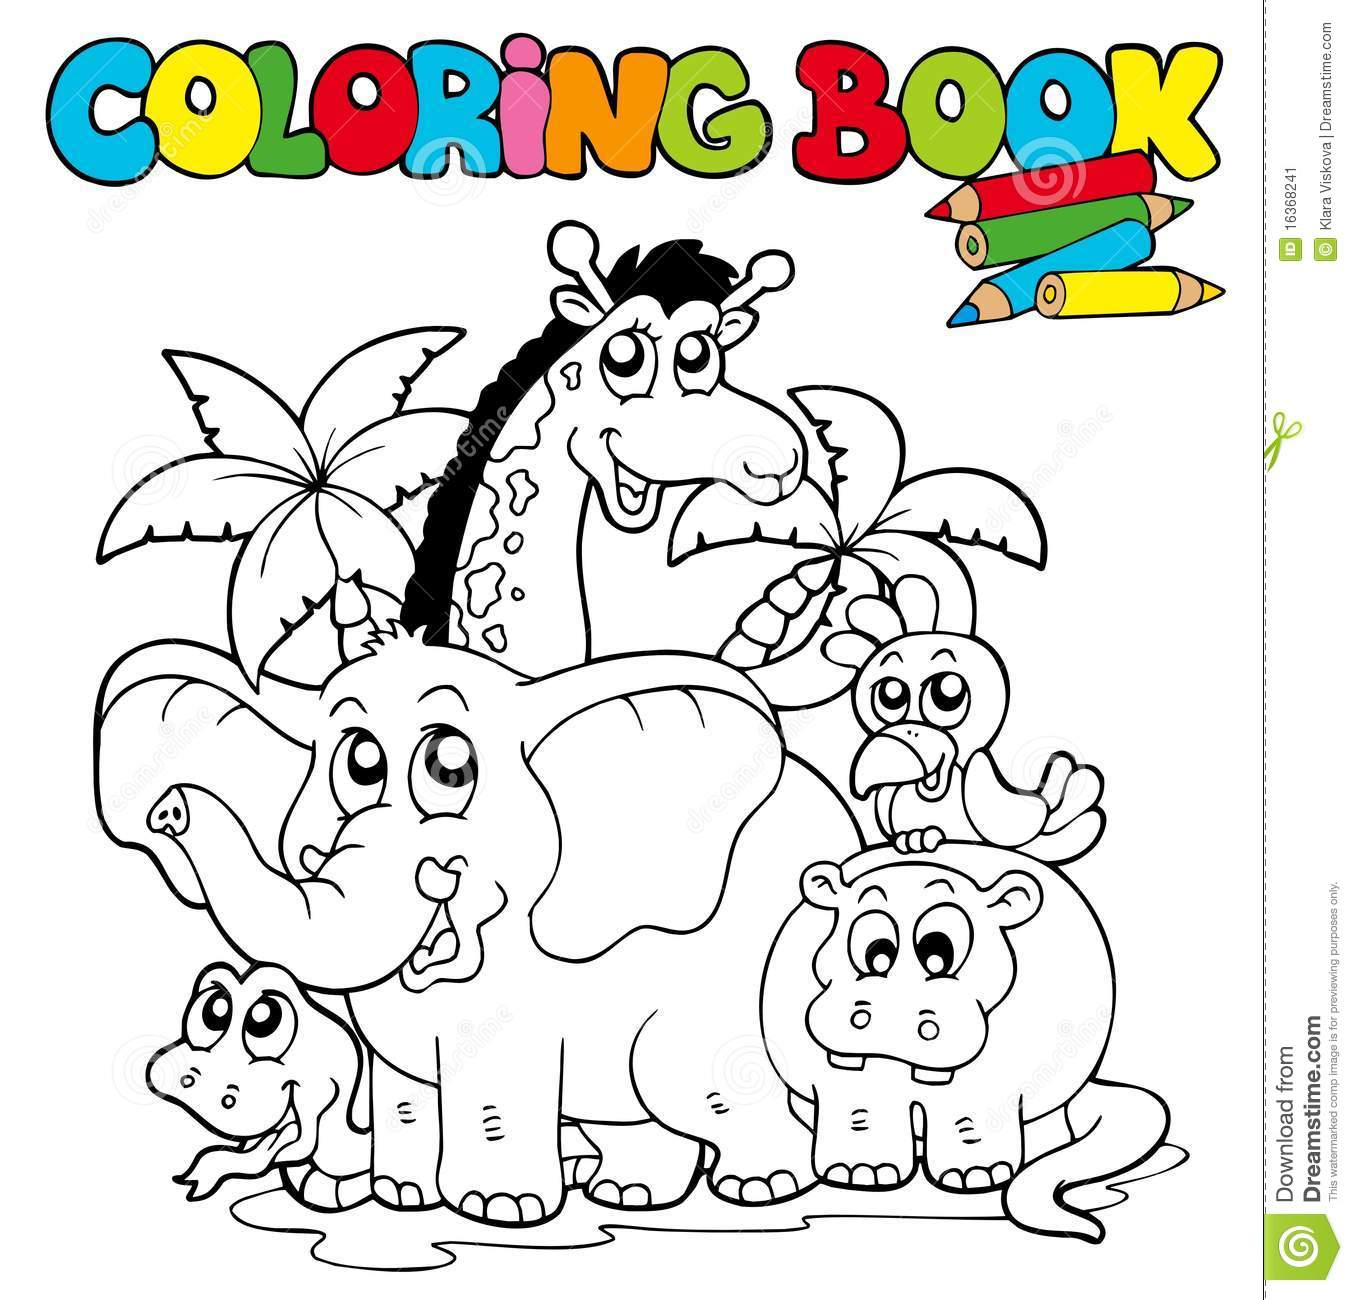 Coloring book with cute animals 1 stock vector Adorable animals coloring book